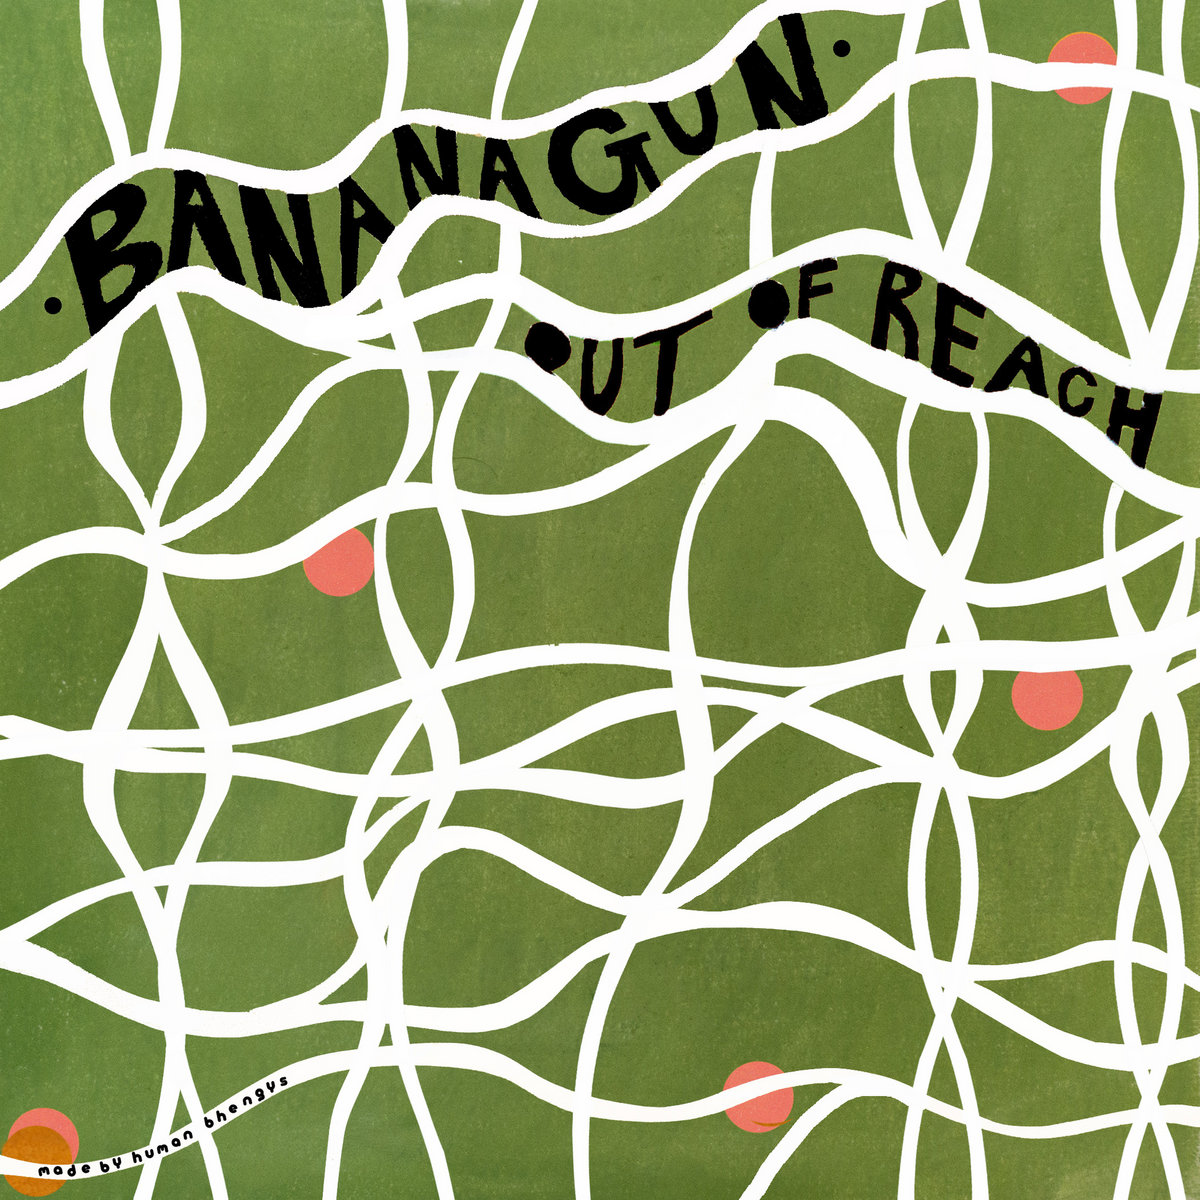 Bananagun – Out of reach 1 - fanzine